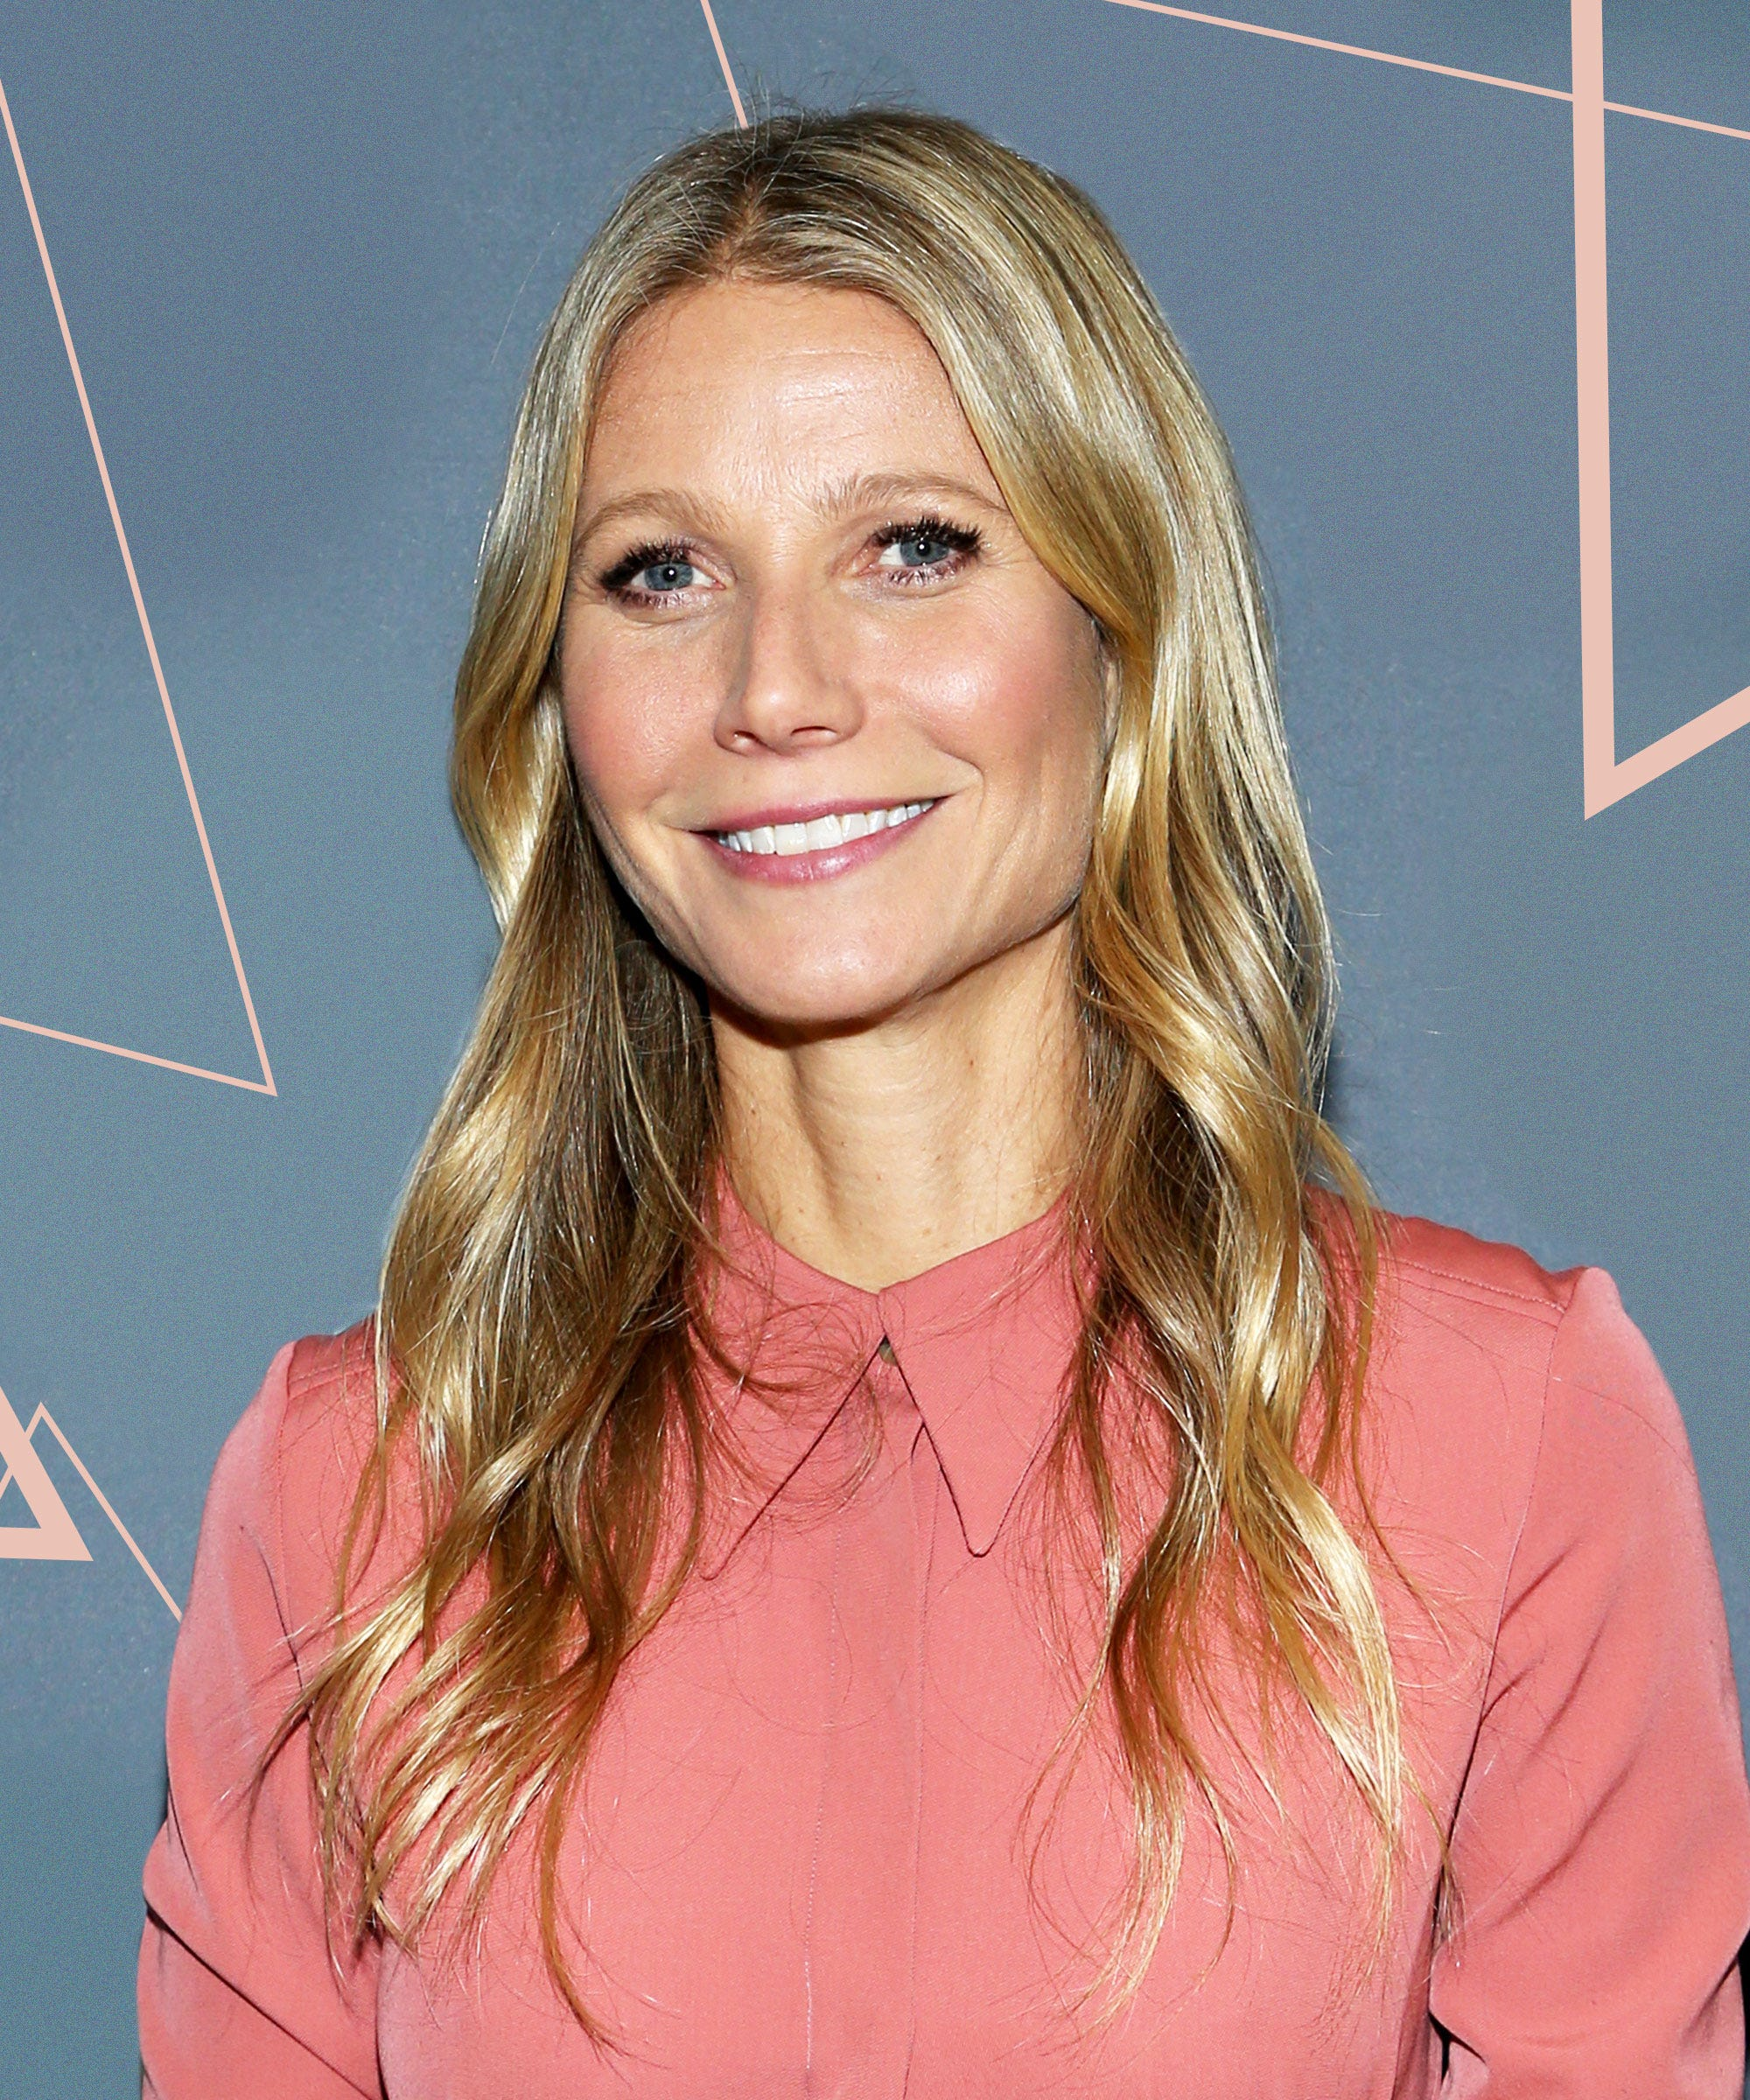 Apple Paltrow Sheds Light On A Growing Instagram Epidemic